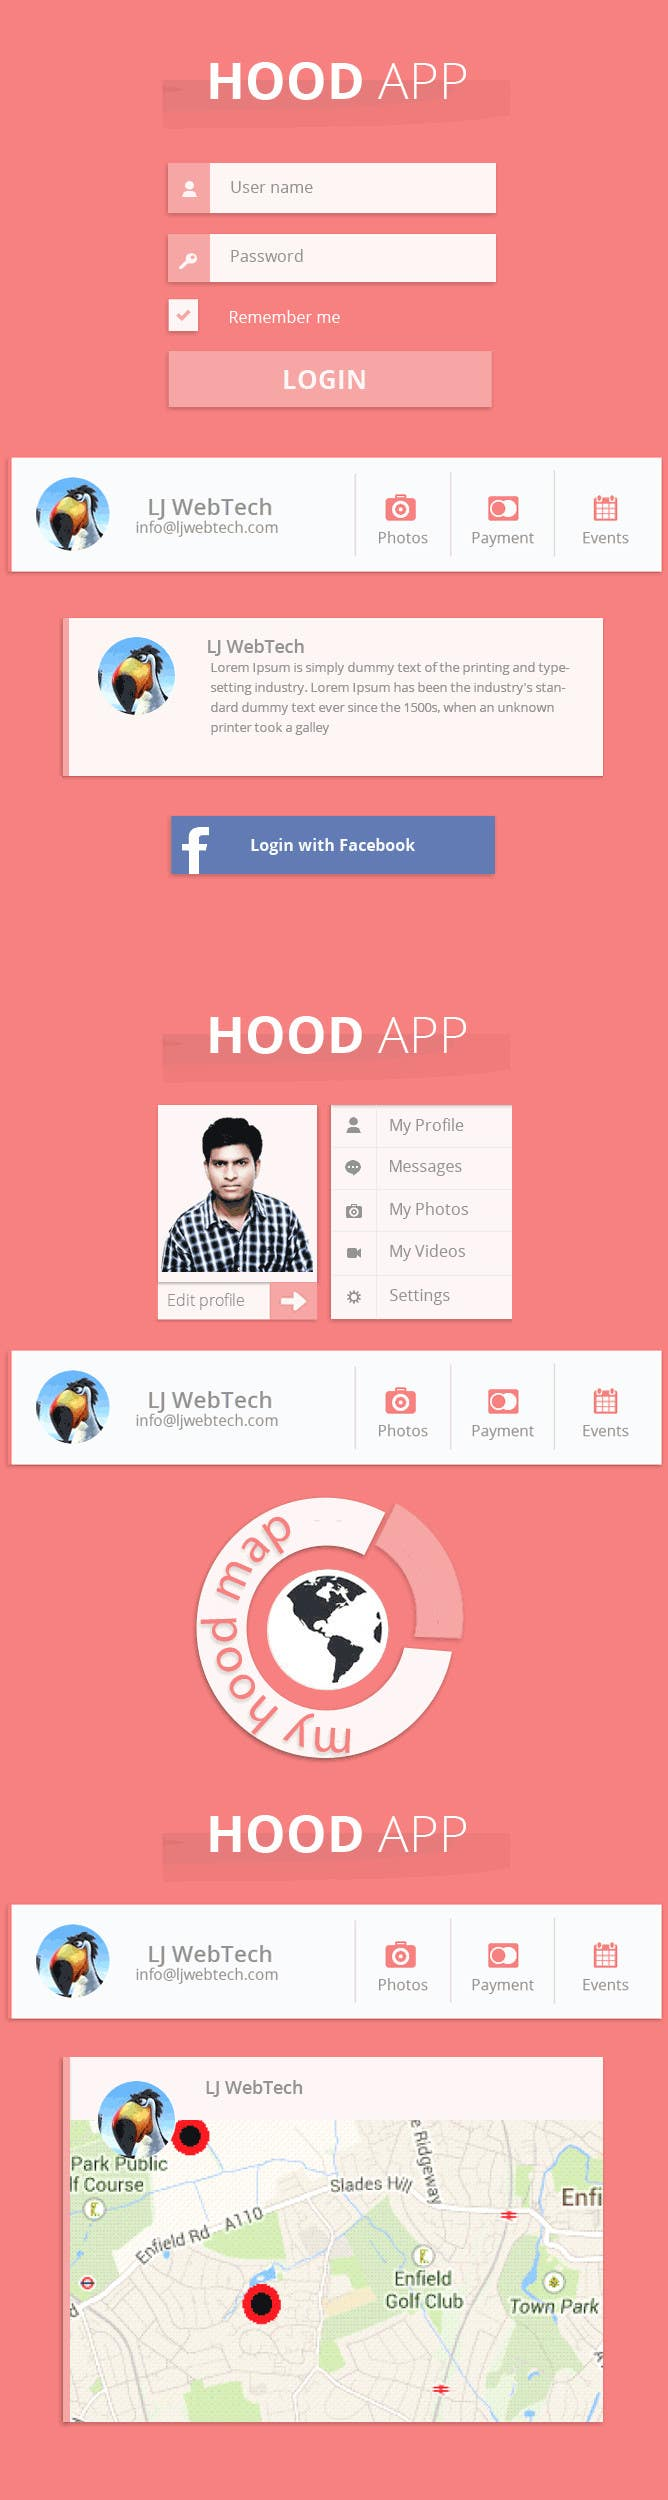 #1 for Design an App Mockup for my mobile game from my sketch by annievaish616